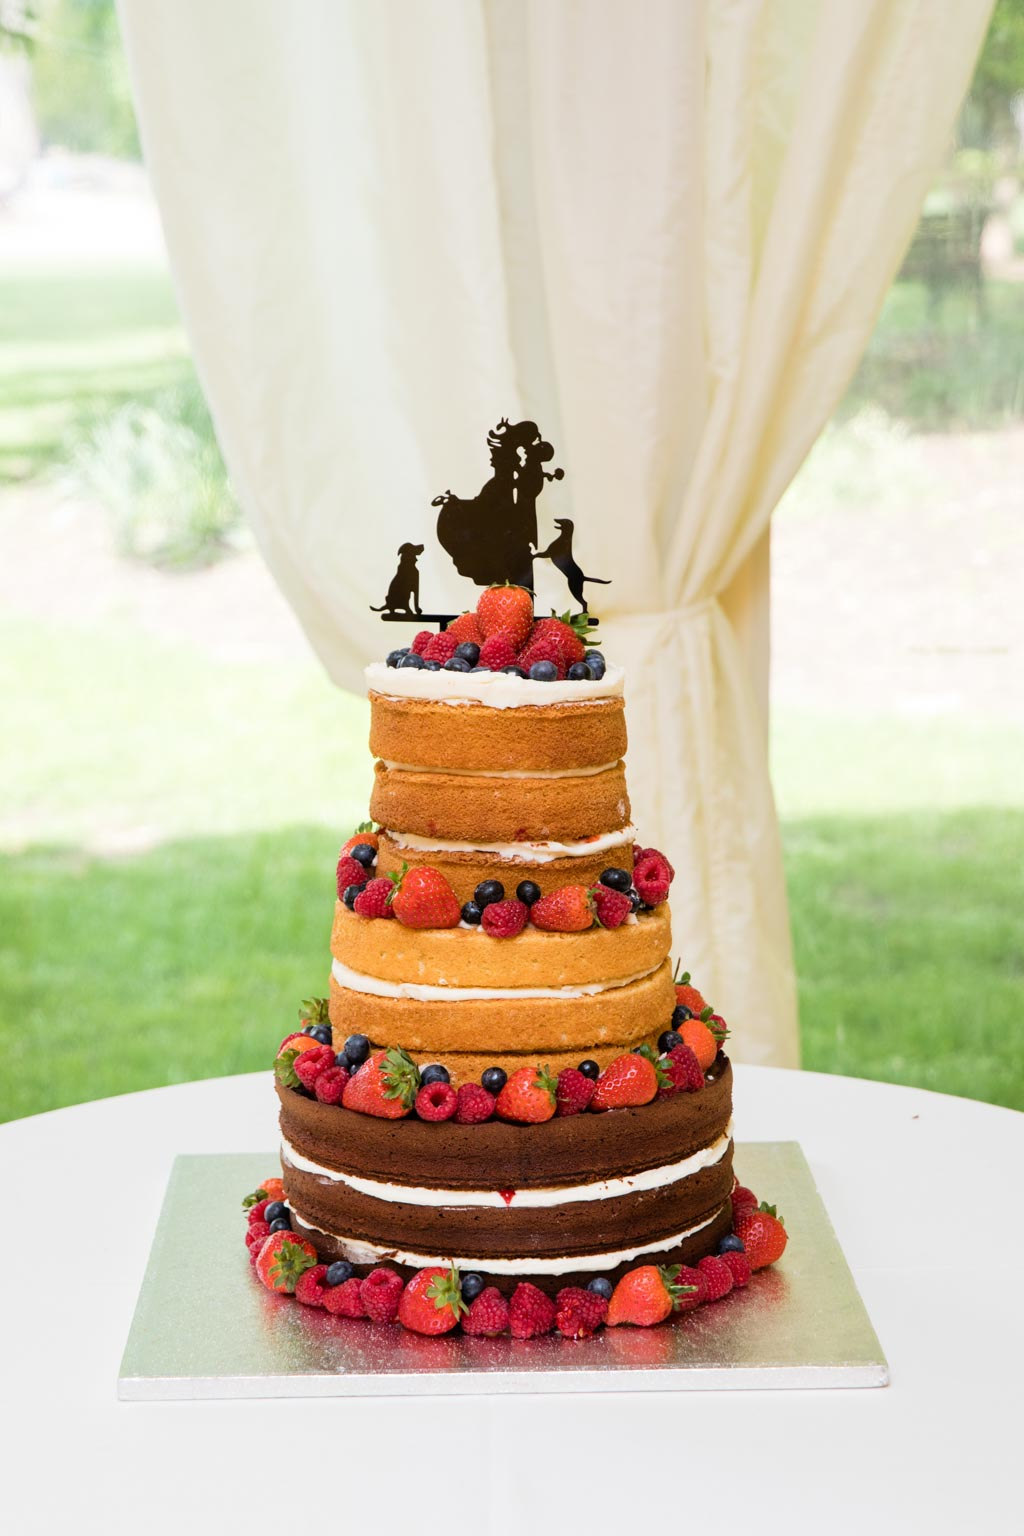 naked sponge wedding cake with summer berries and cream